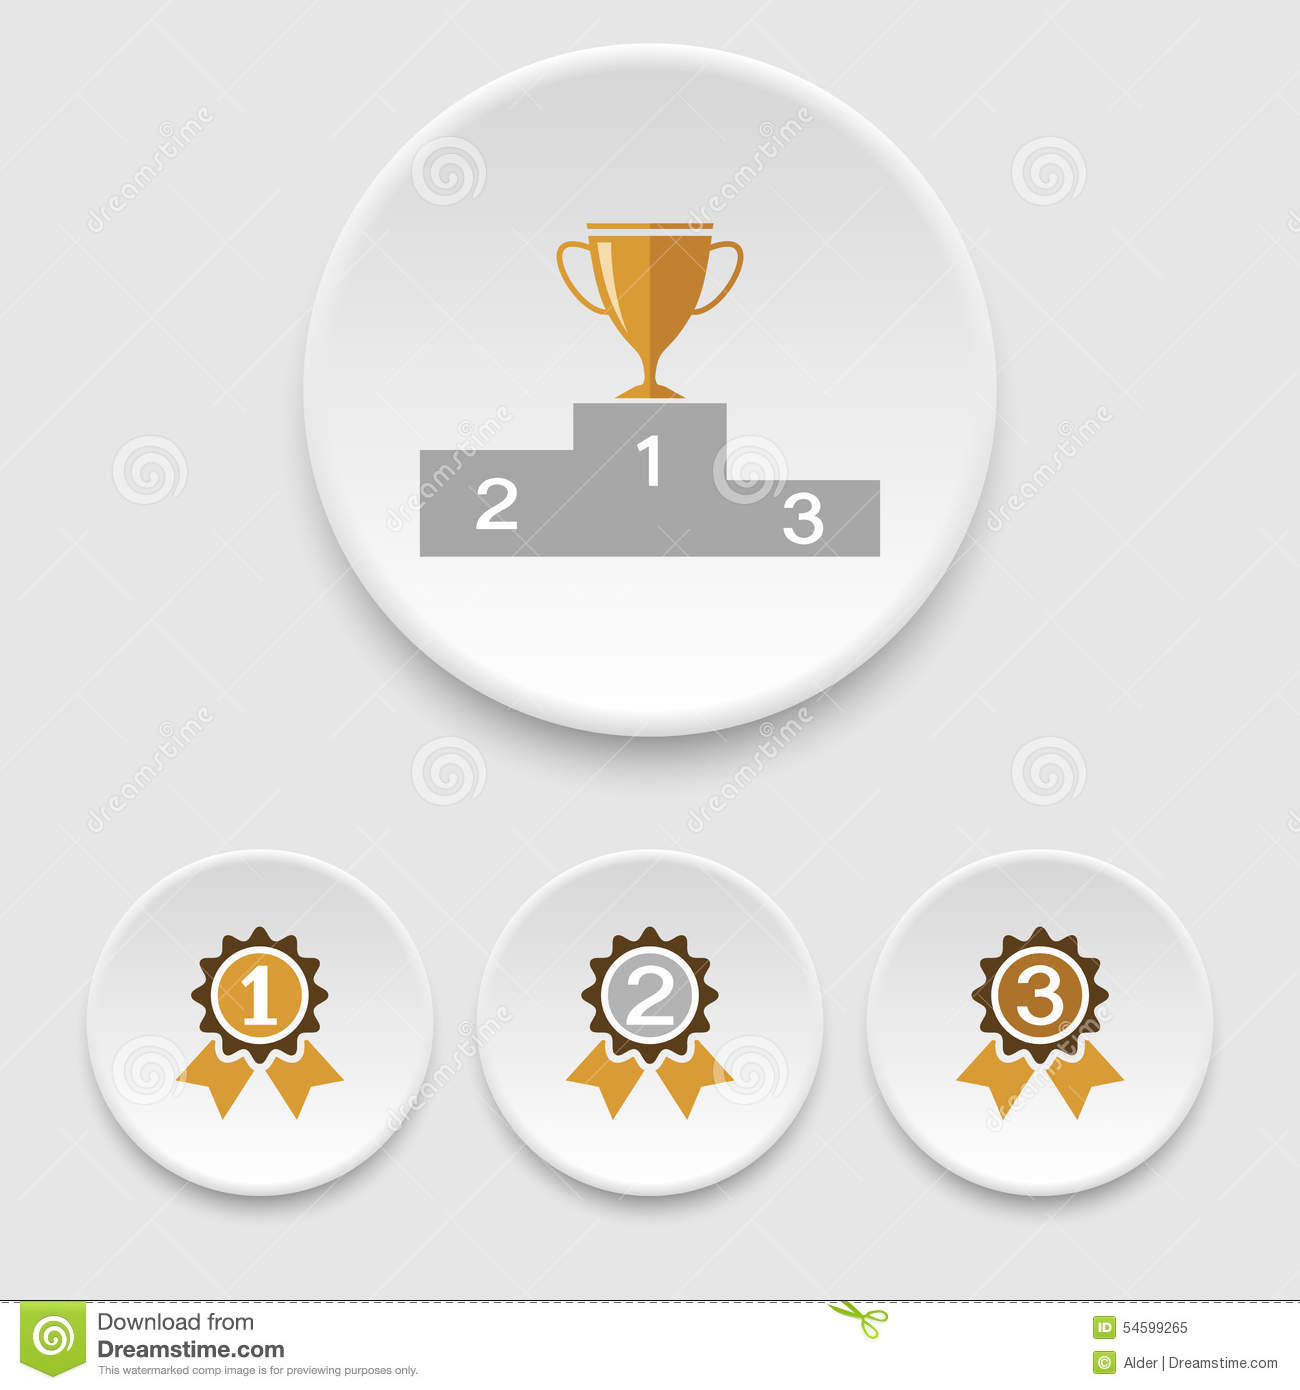 Winner Podium, Champion Cup And Awards Icons Stock Vector